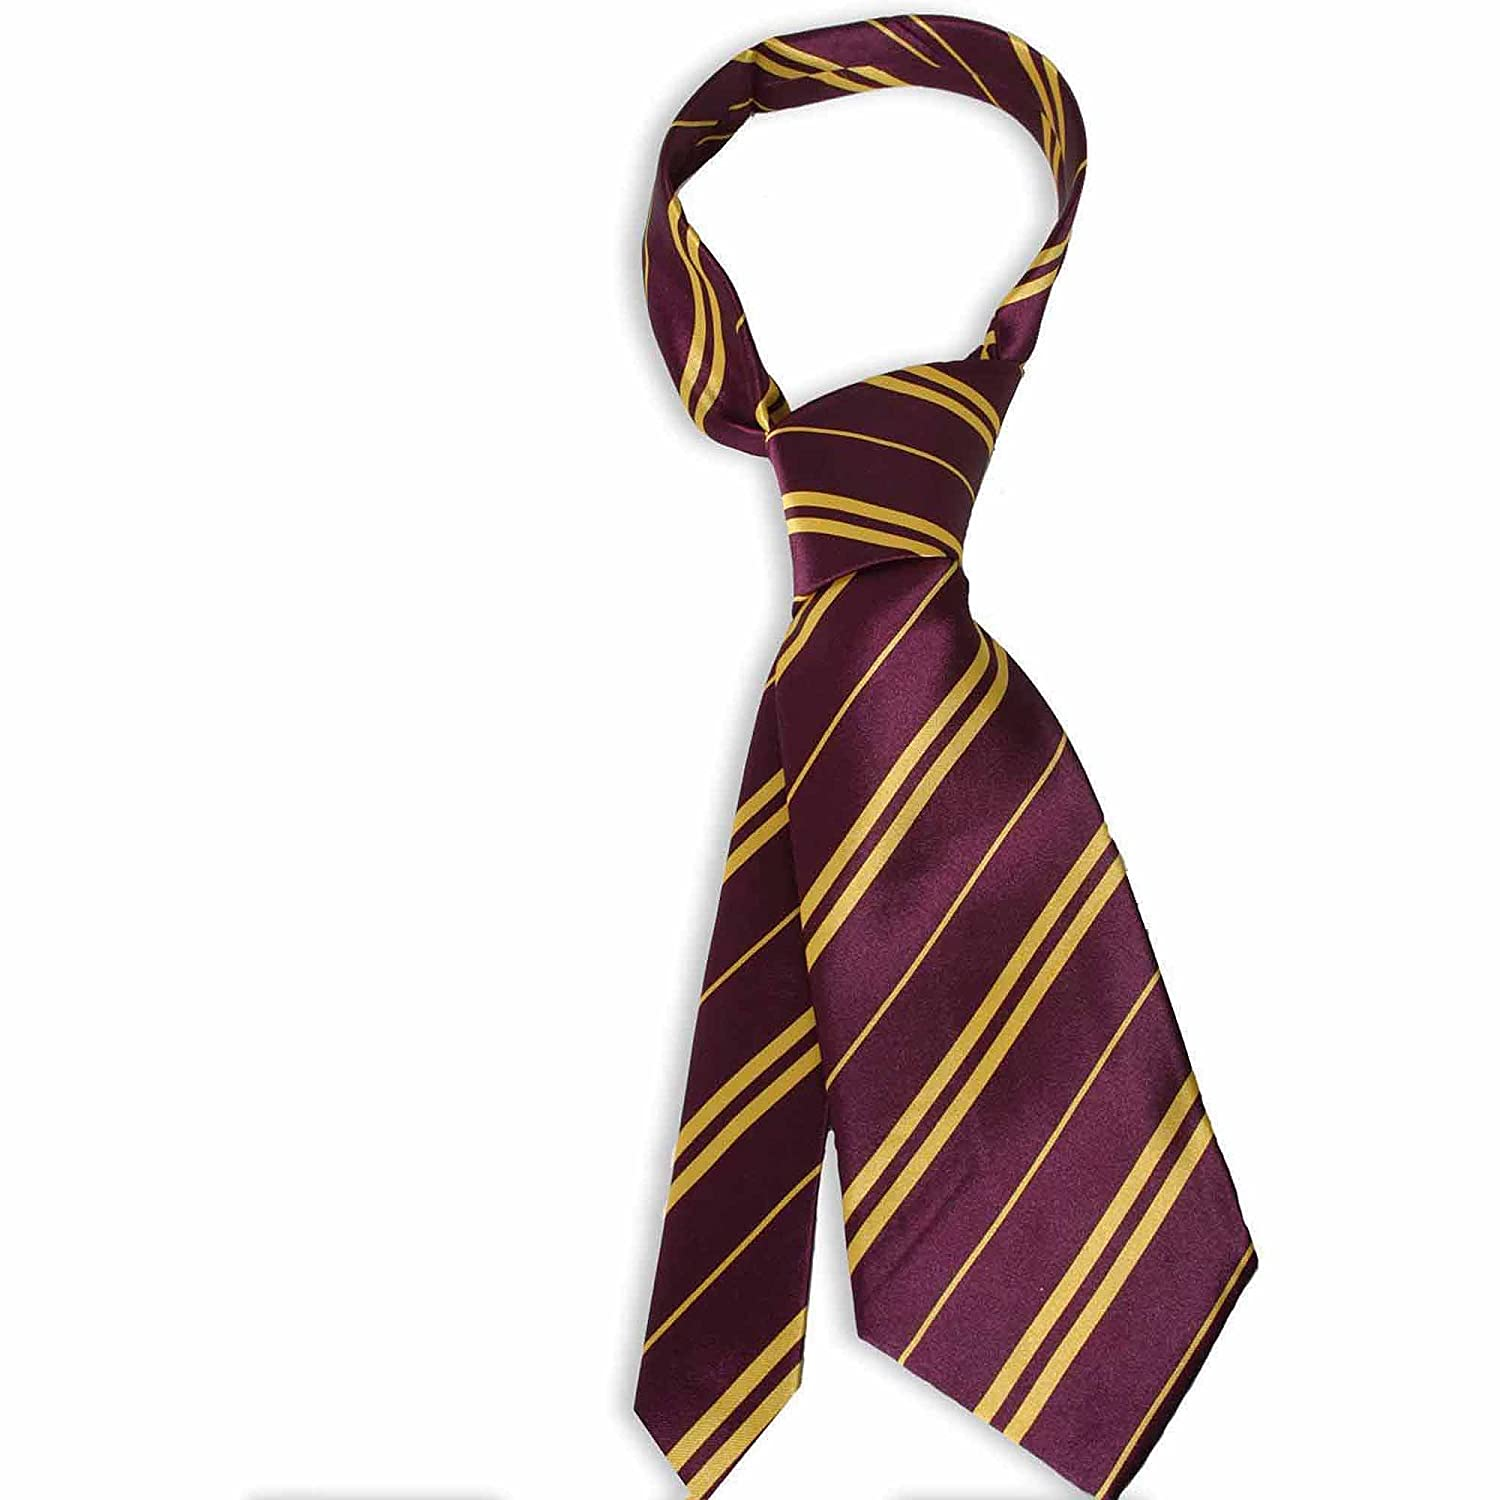 Harry Potter Tie Costume Accessory RioRand 082686035446